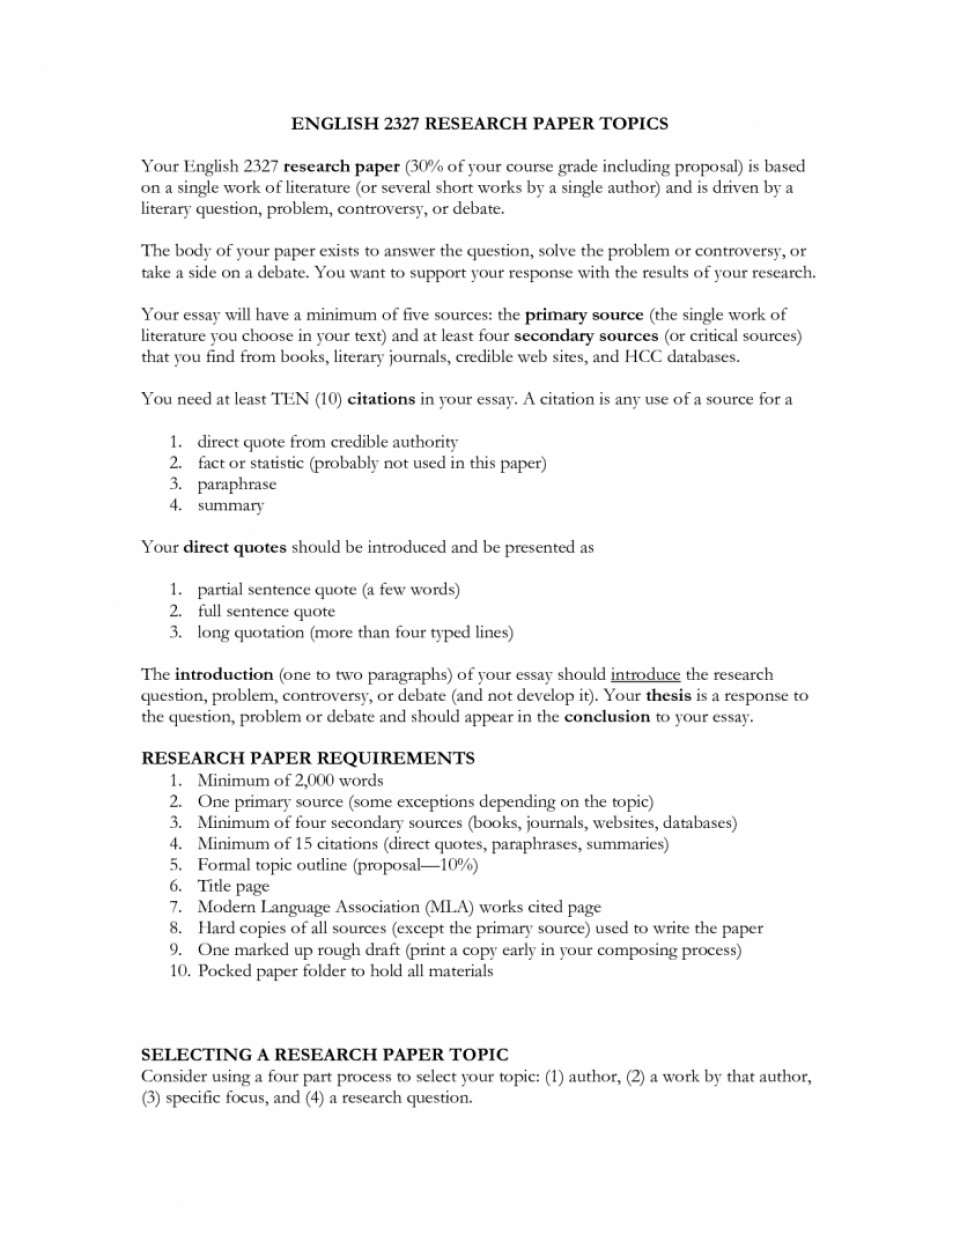 Constitution and change thematic essay